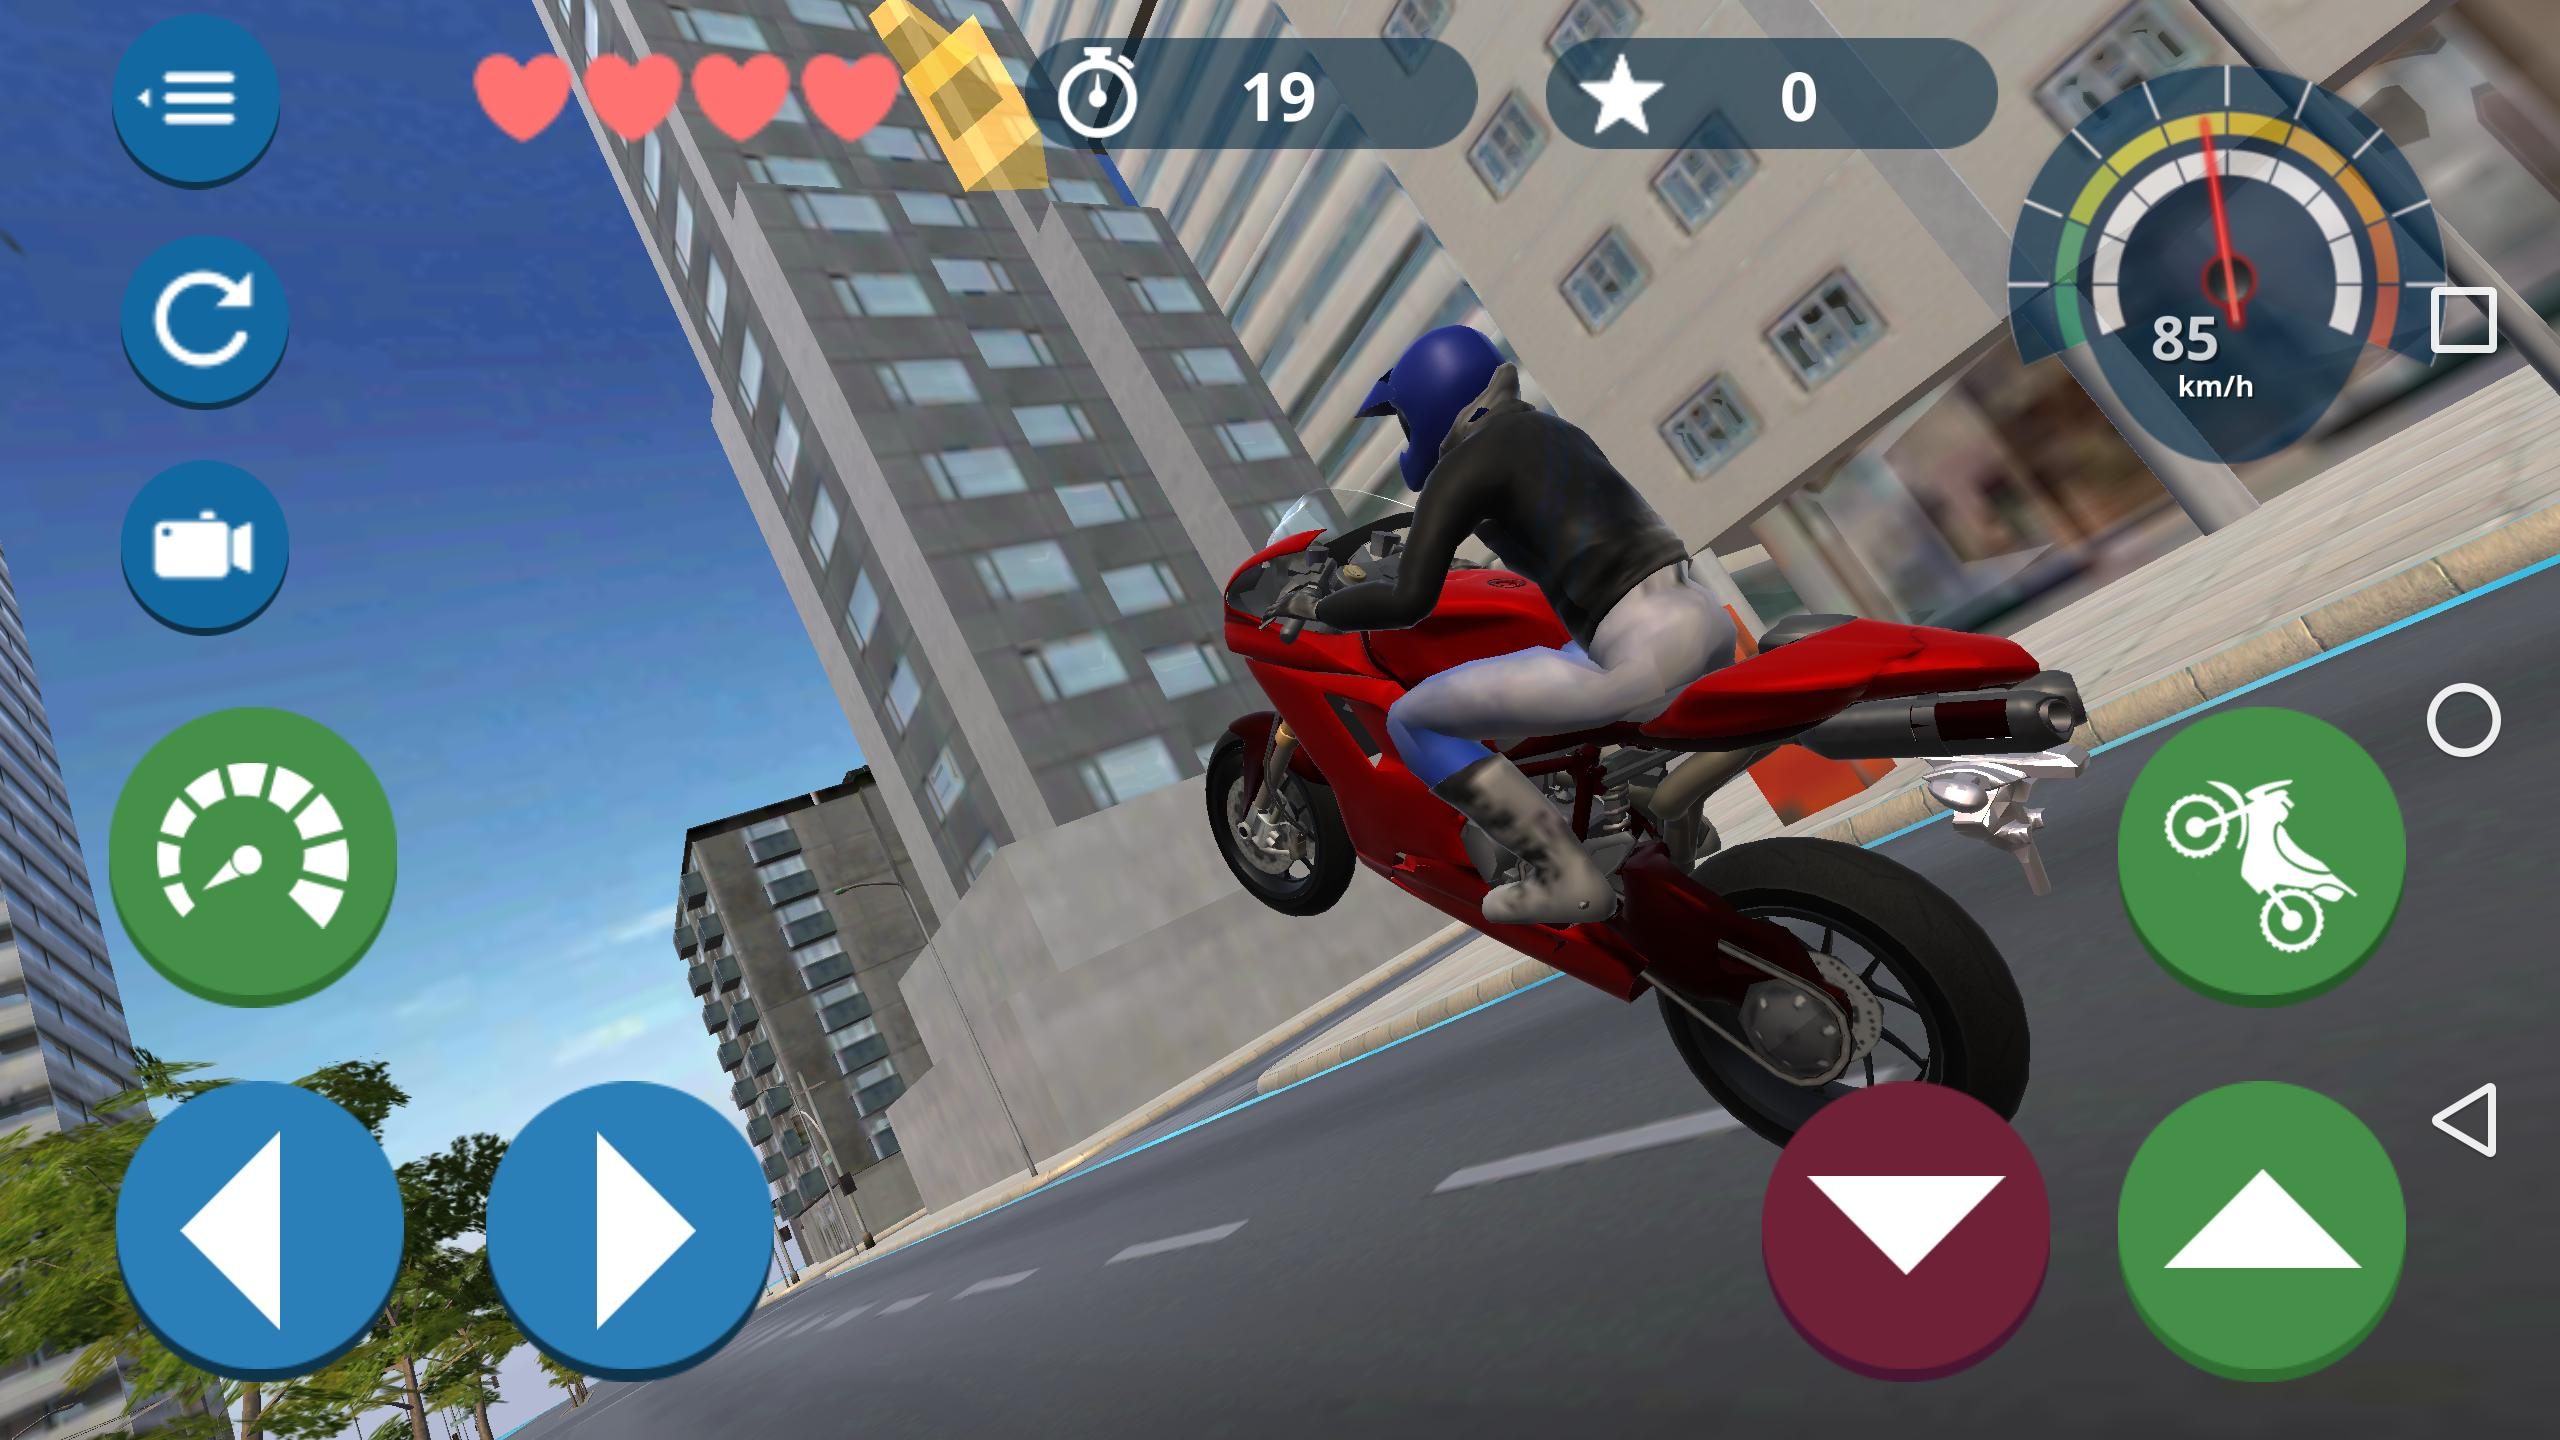 Moto Sd The Motorcycle Game For